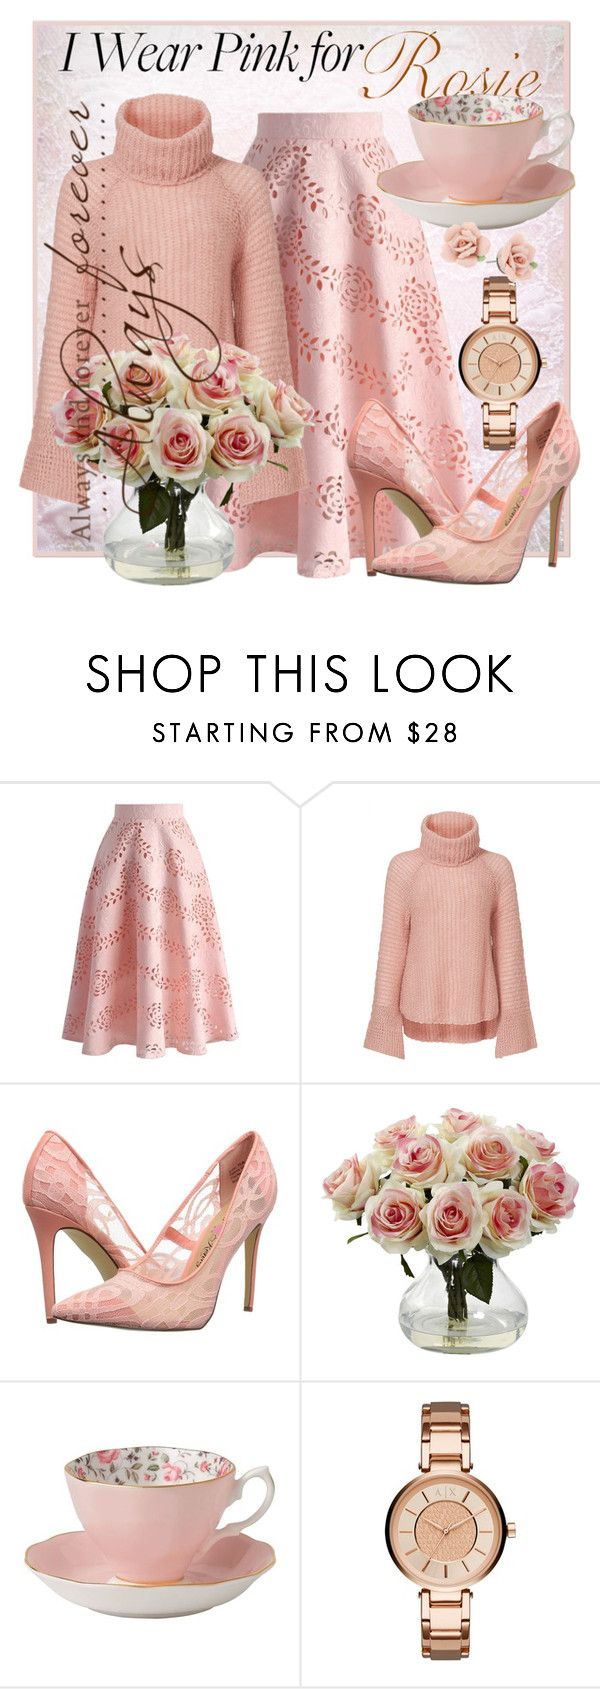 """""""I Wear Pink For ... Rosie"""" by geewhizart ❤ liked on Polyvore featuring Chicwish, Calypso St. Barth, Penny Loves Kenny, Royal Albert, Armani Exchange, 1928 and IWearPinkFor"""